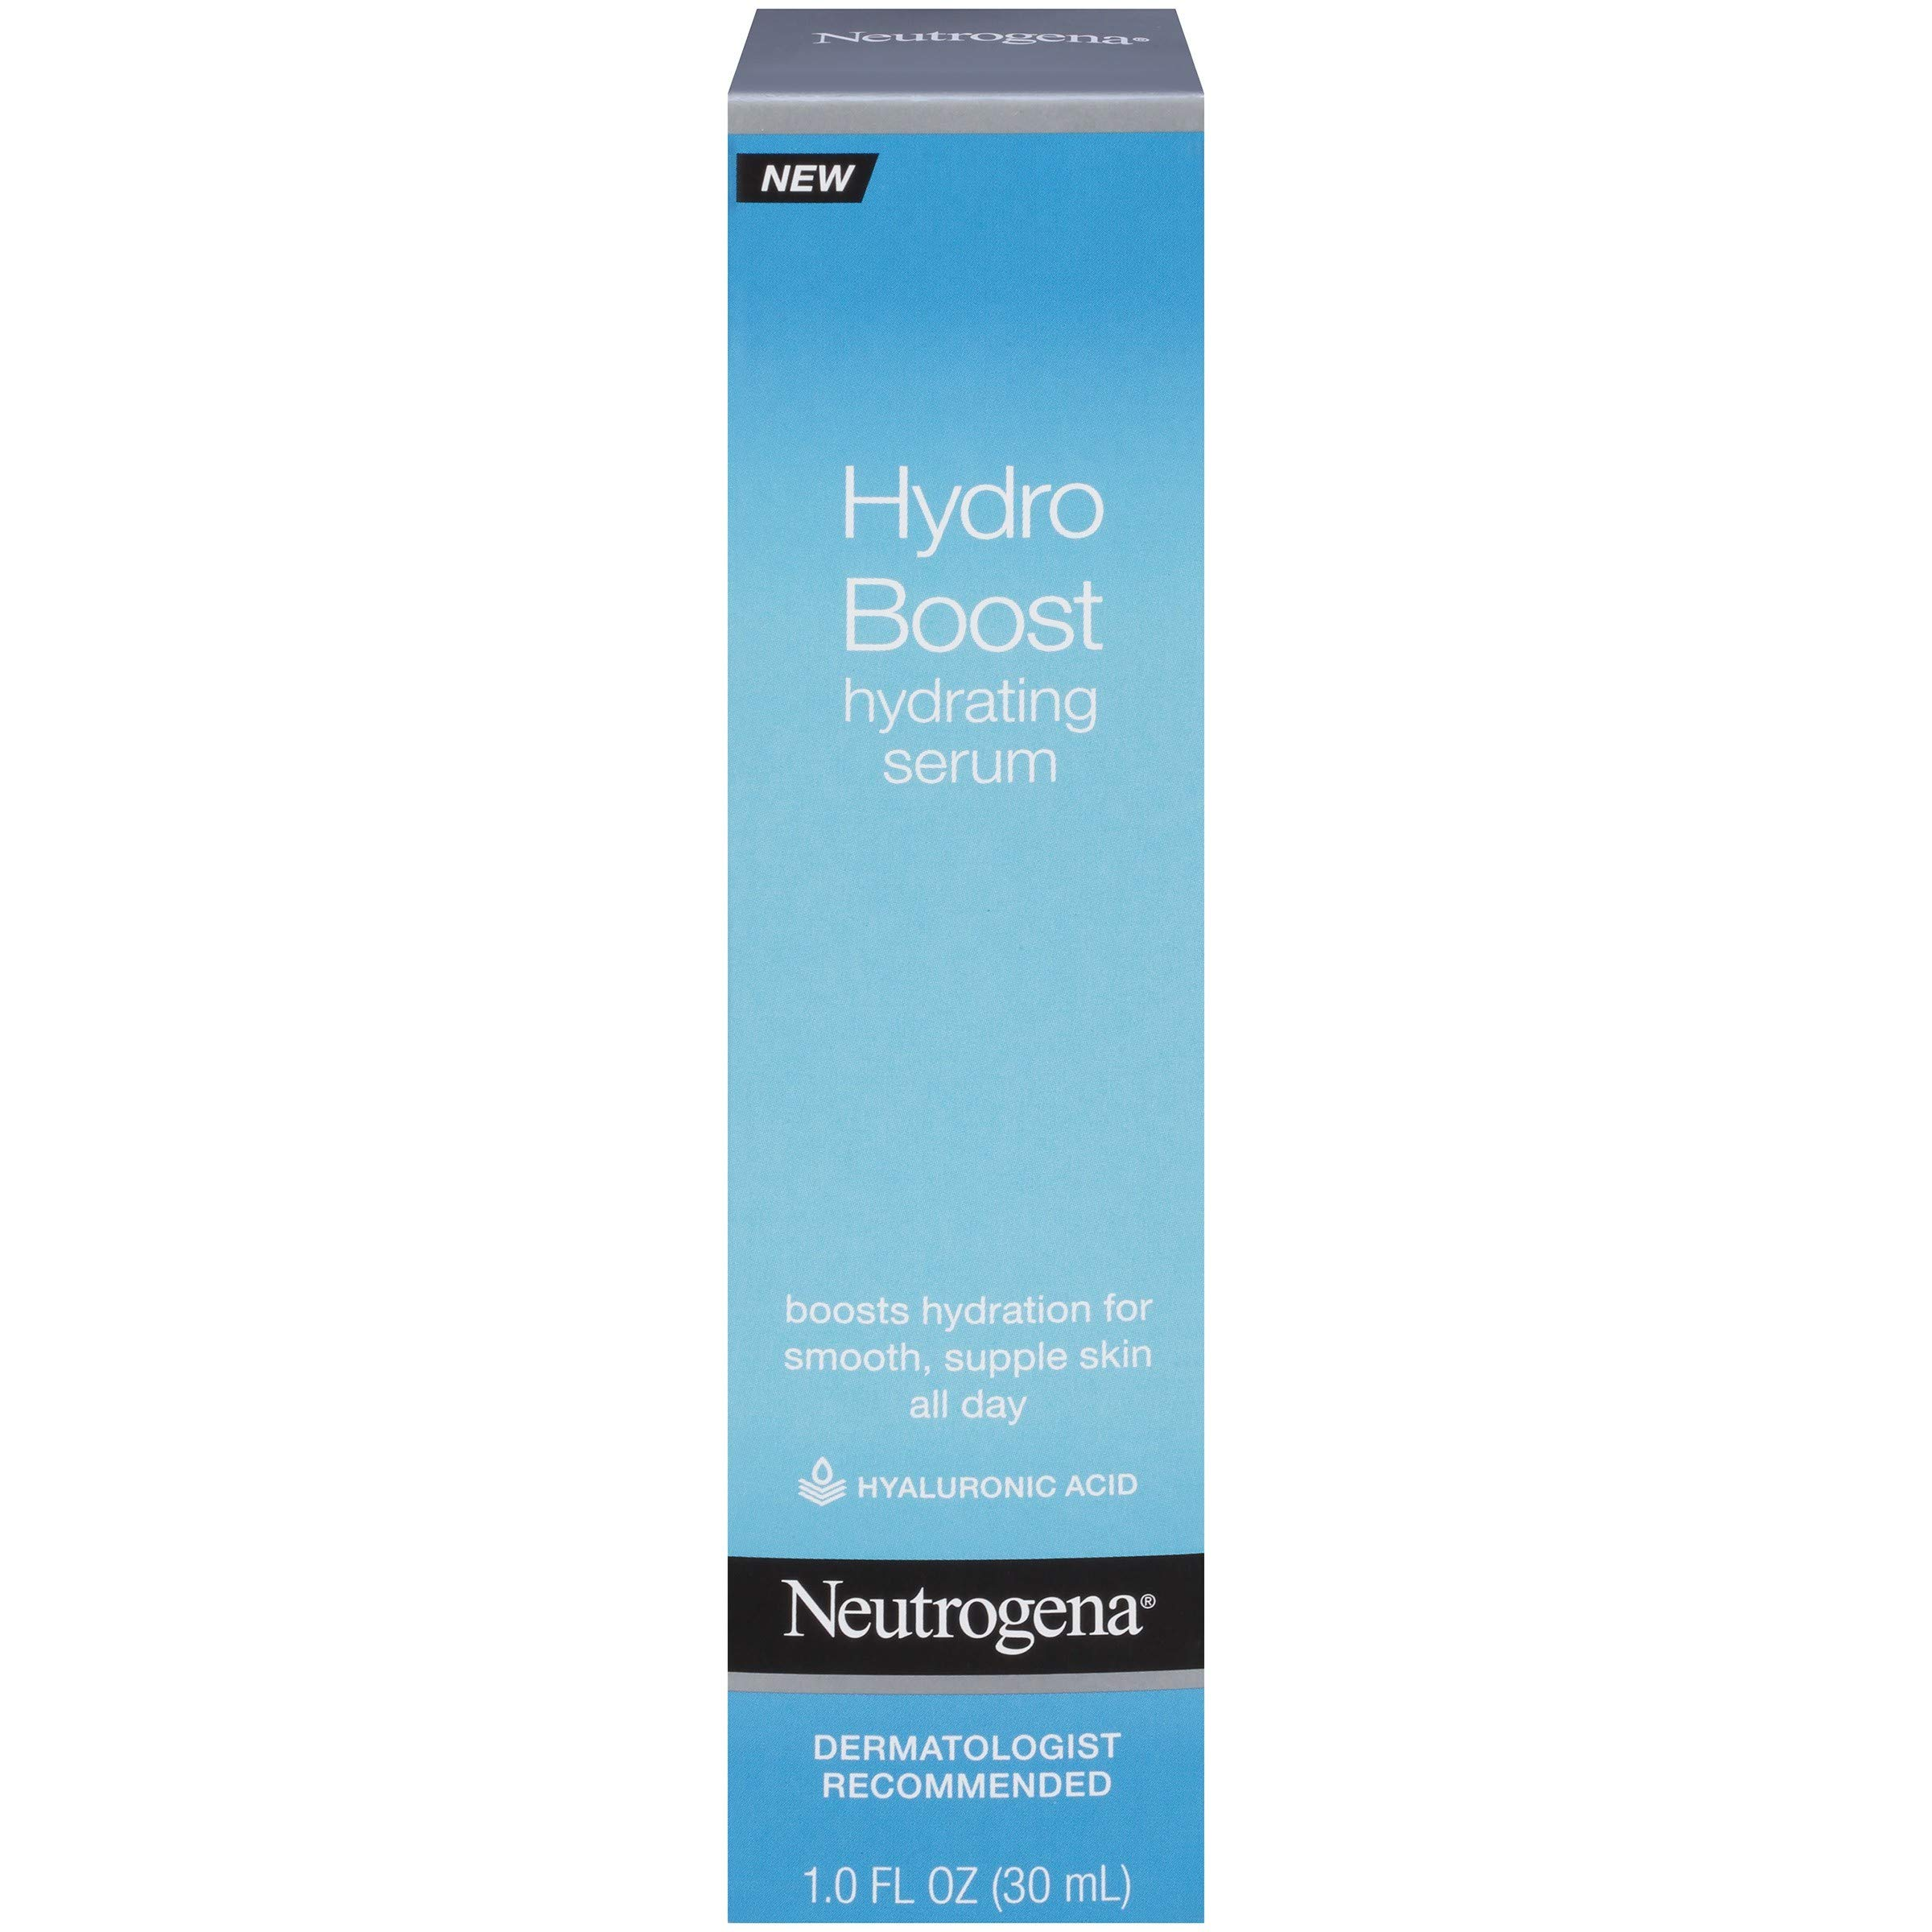 Neutrogena Hydro Boost Hydrating Hyaluronic Acid Serum, Oil-Free and Non-Comedogenic Formula for Glowing Complexion, 1 fl. oz by Neutrogena